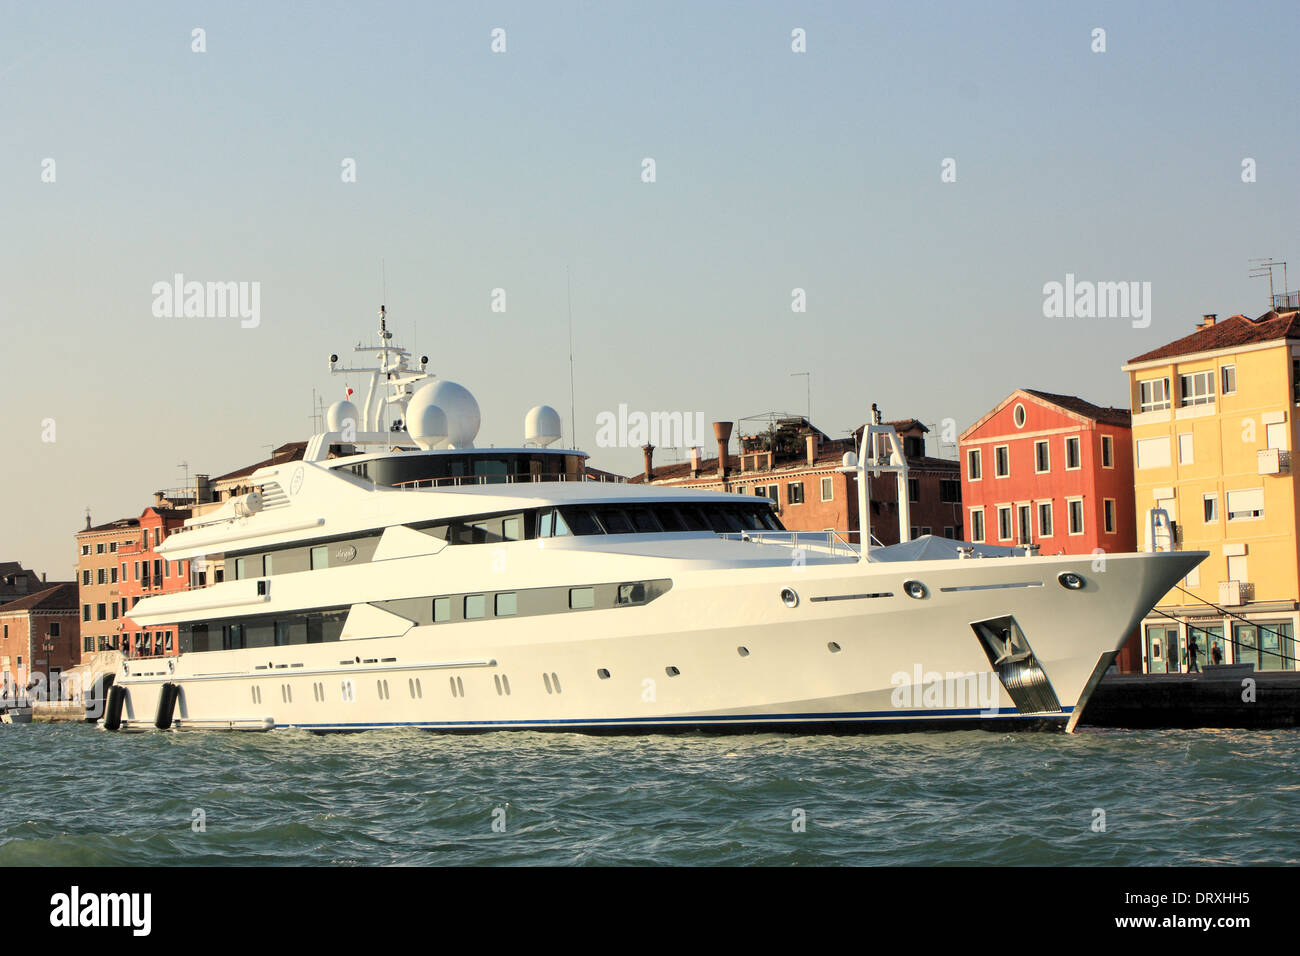 Yacht Stargate, one of the world's longest motor luxury yachts built by Oceanco for the Qatar Royal family,  IMO 1005904 - Stock Image